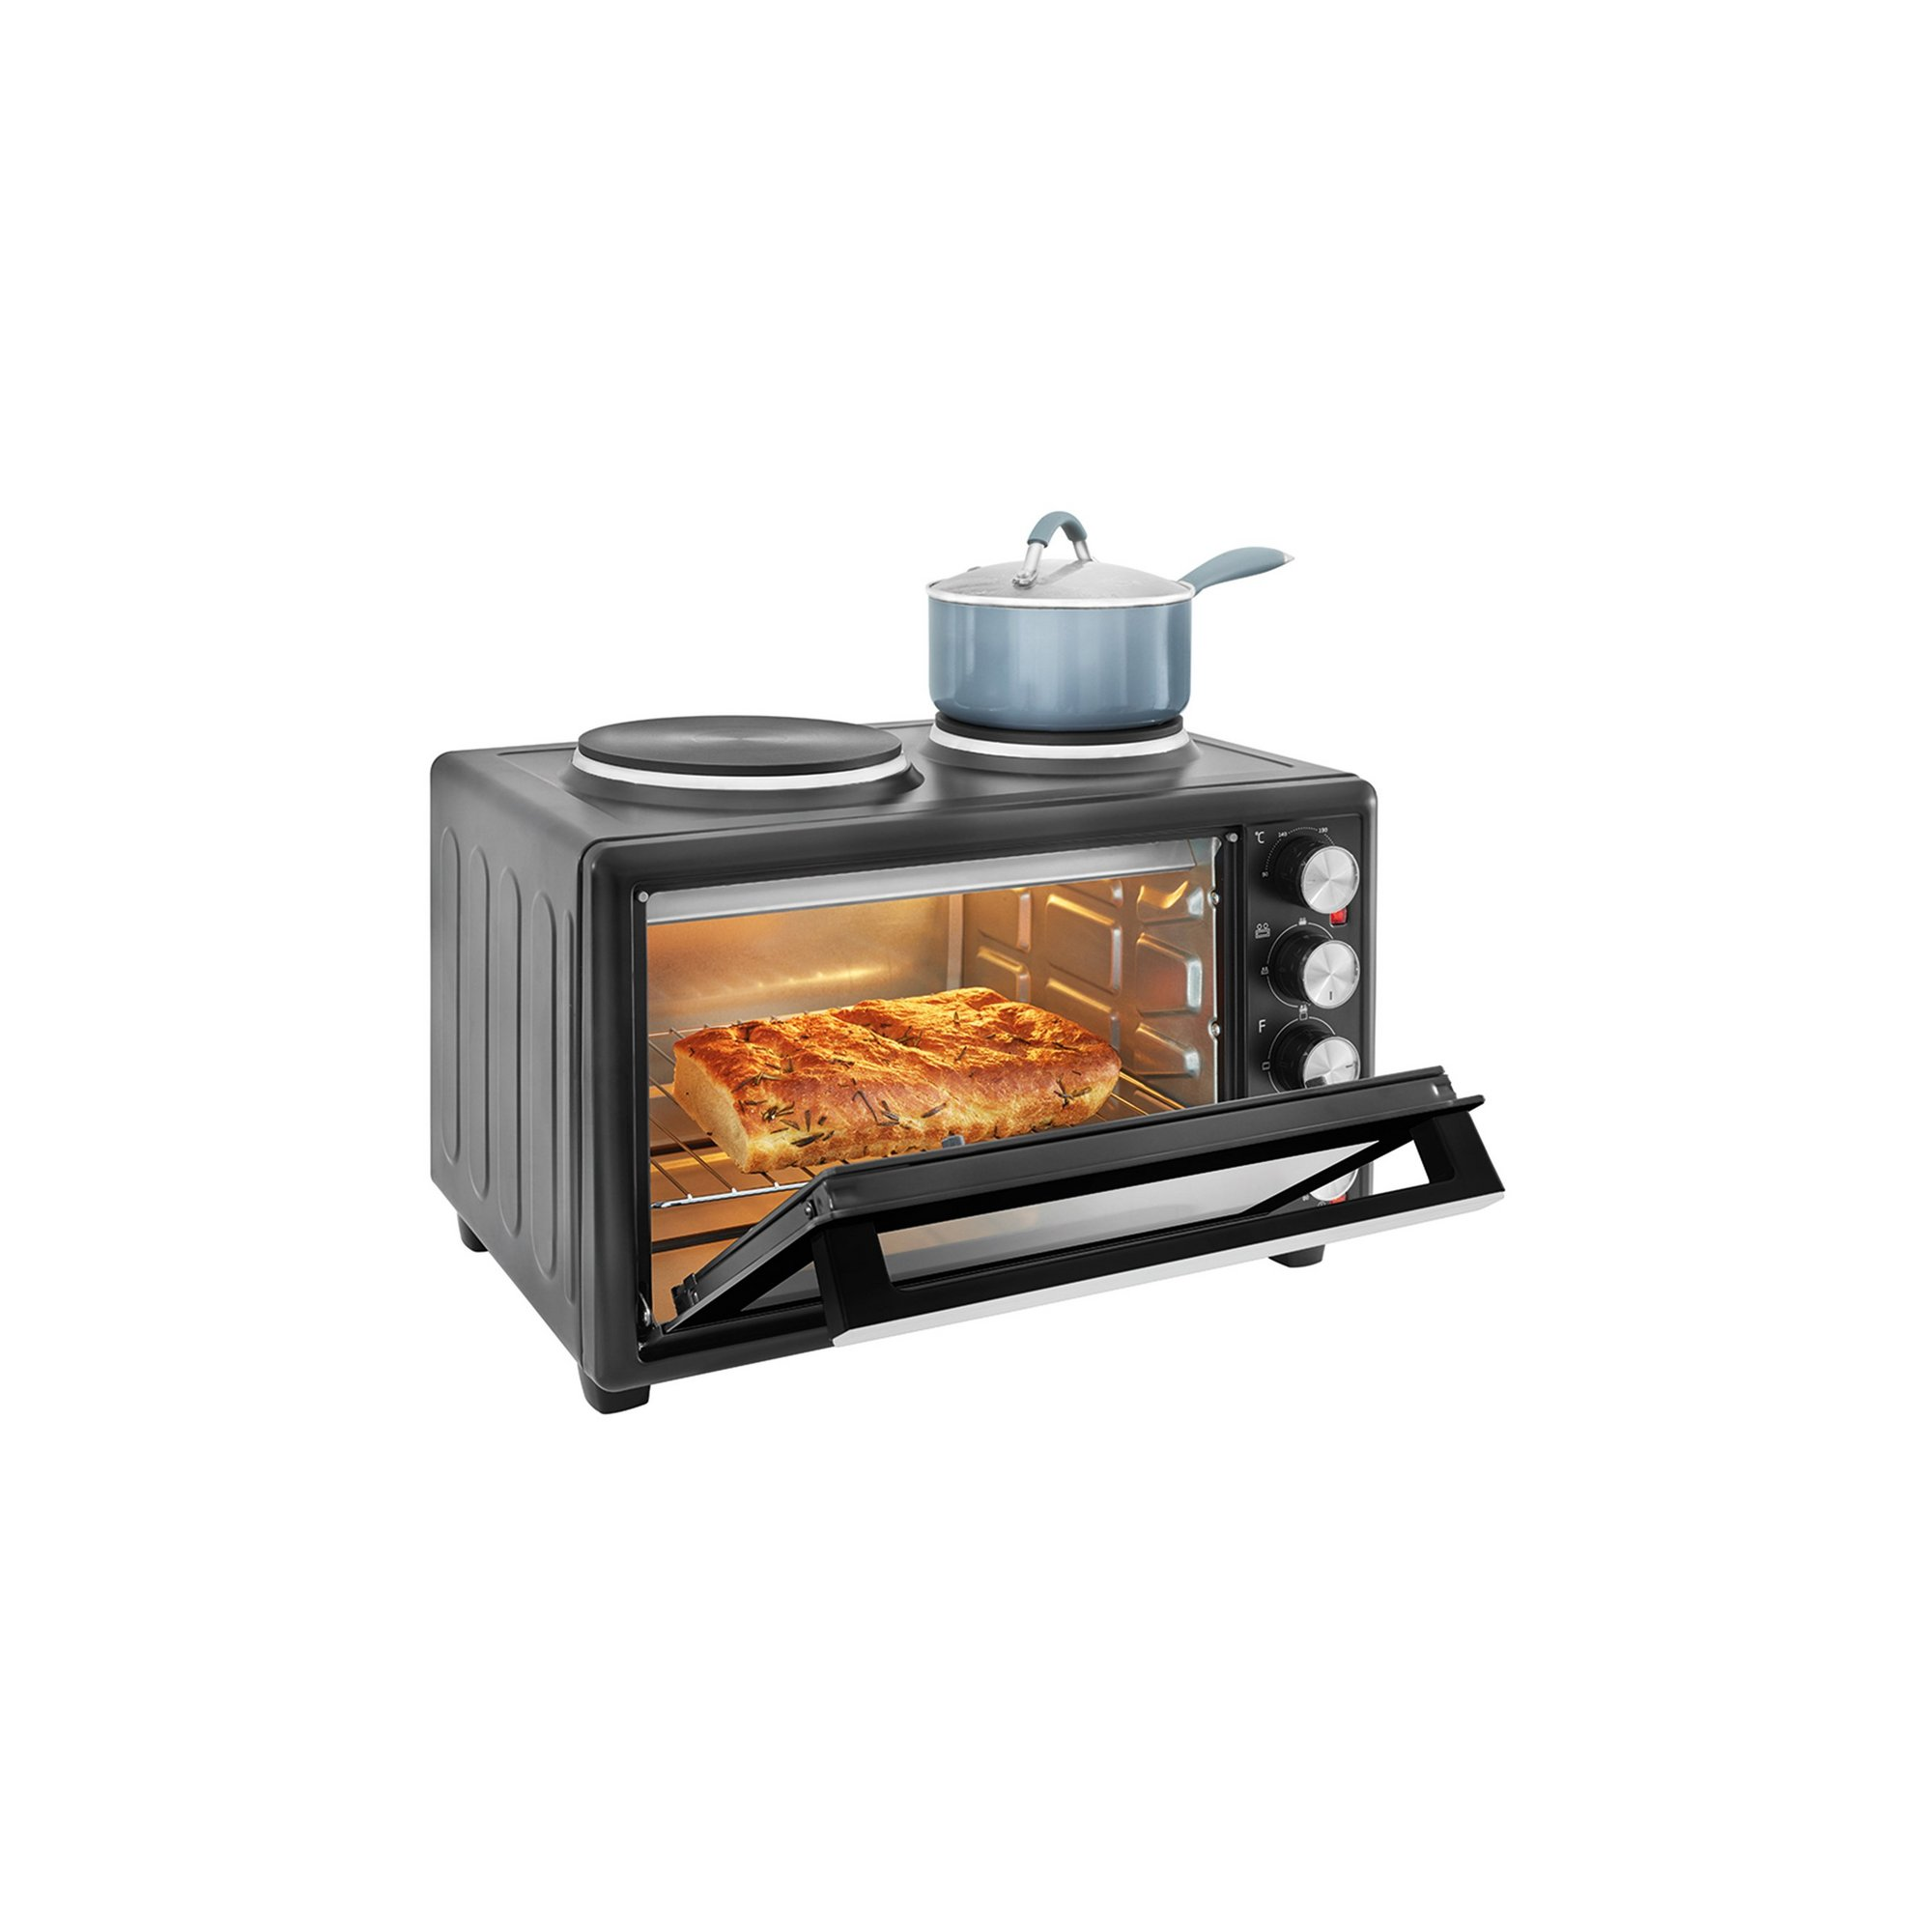 Image of Beko Compact Oven with Hob